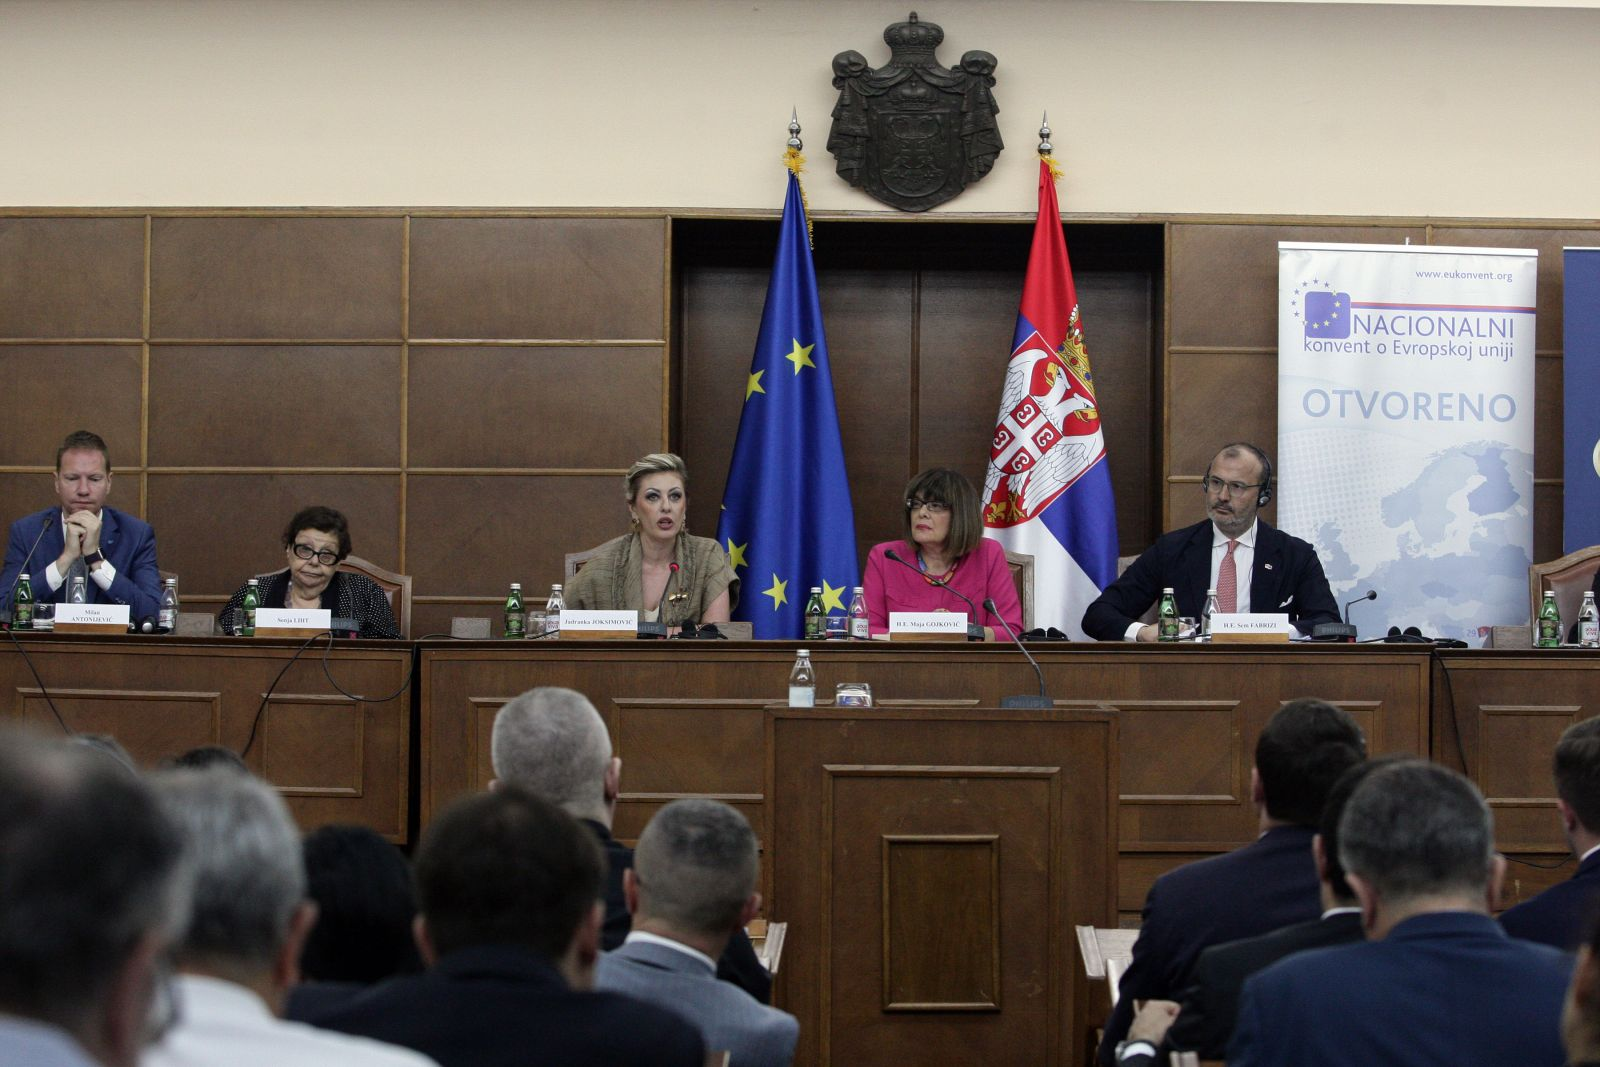 J. Joksimović: The Balkans incorporable into the EU, Serbia's place is within it